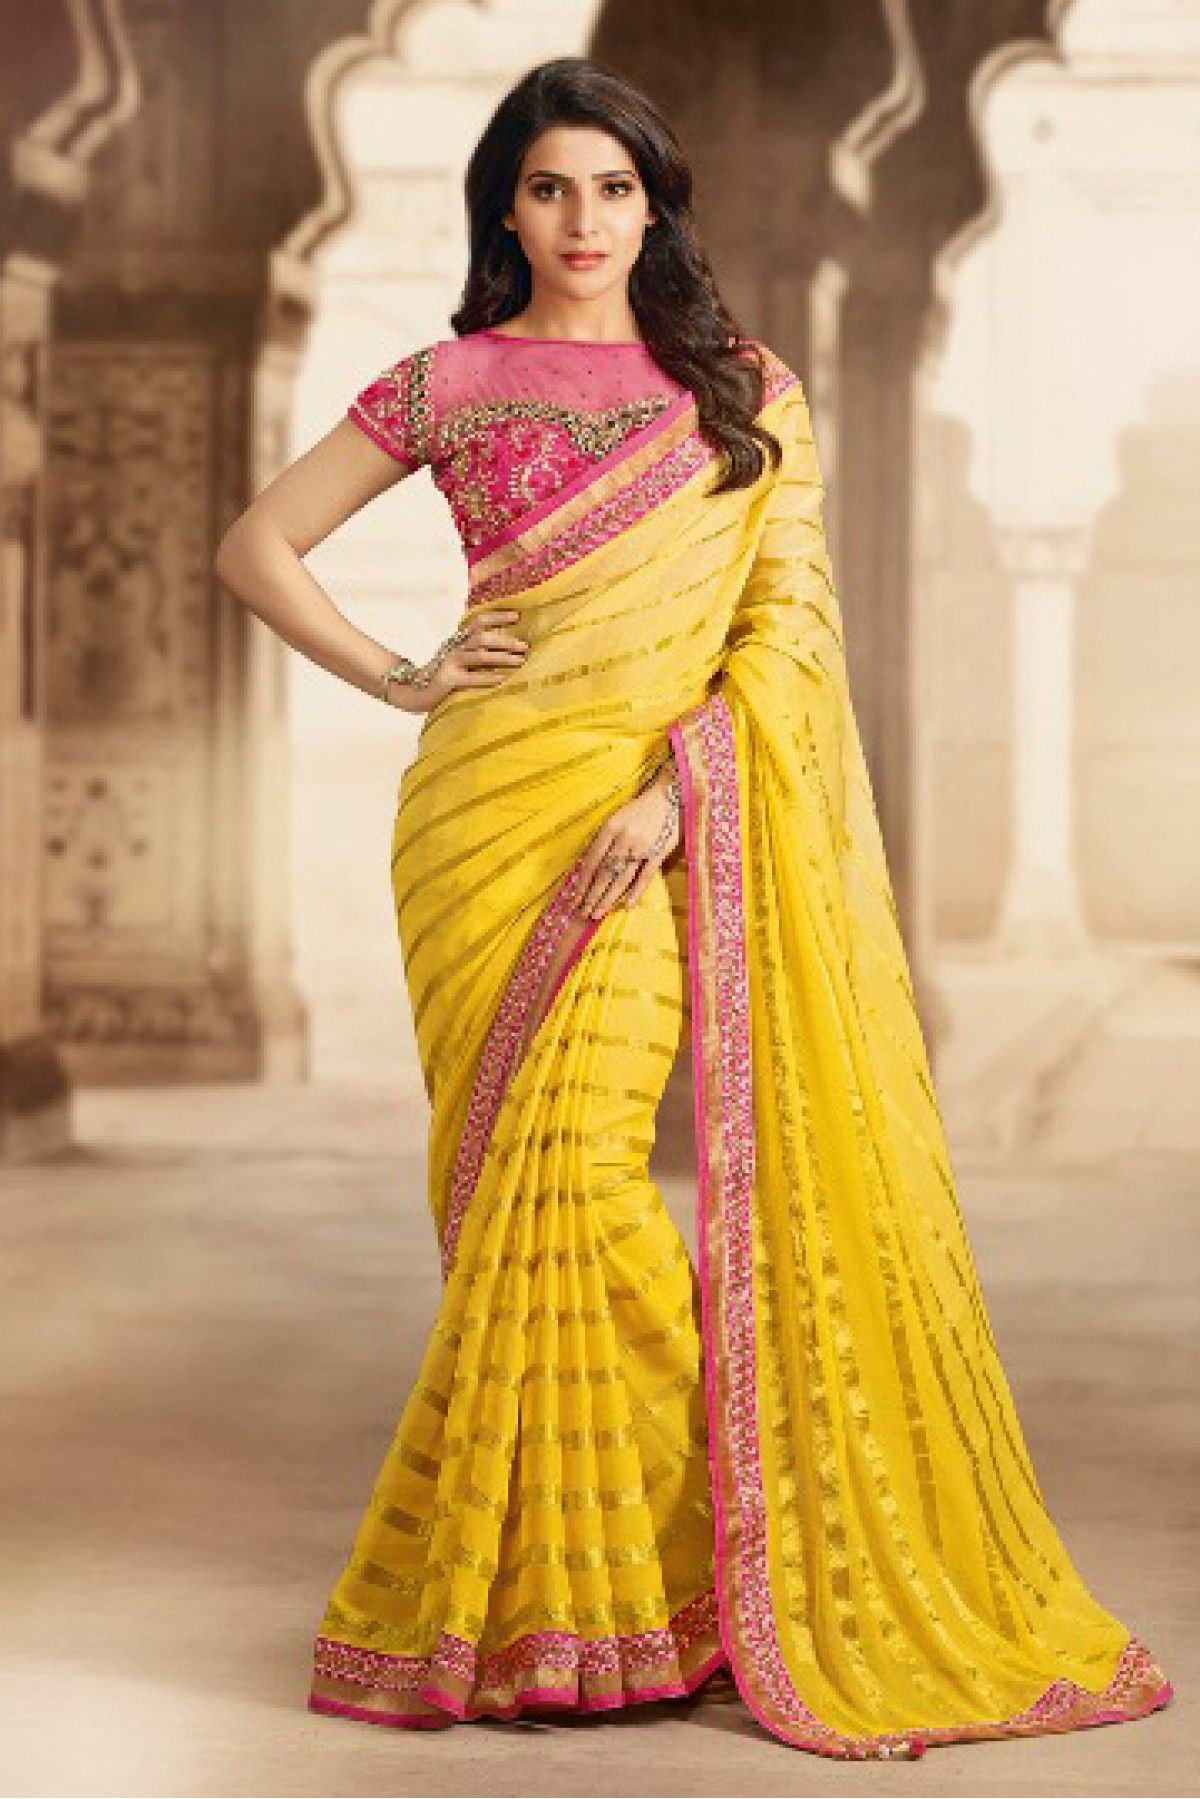 316247a1545606 Yellow Colour Georgette Fabric Designer Saree Comes With Matching Blouse.  This Saree Is Crafted With Stone Work,Thread Work,Embroidery,Lace Work.